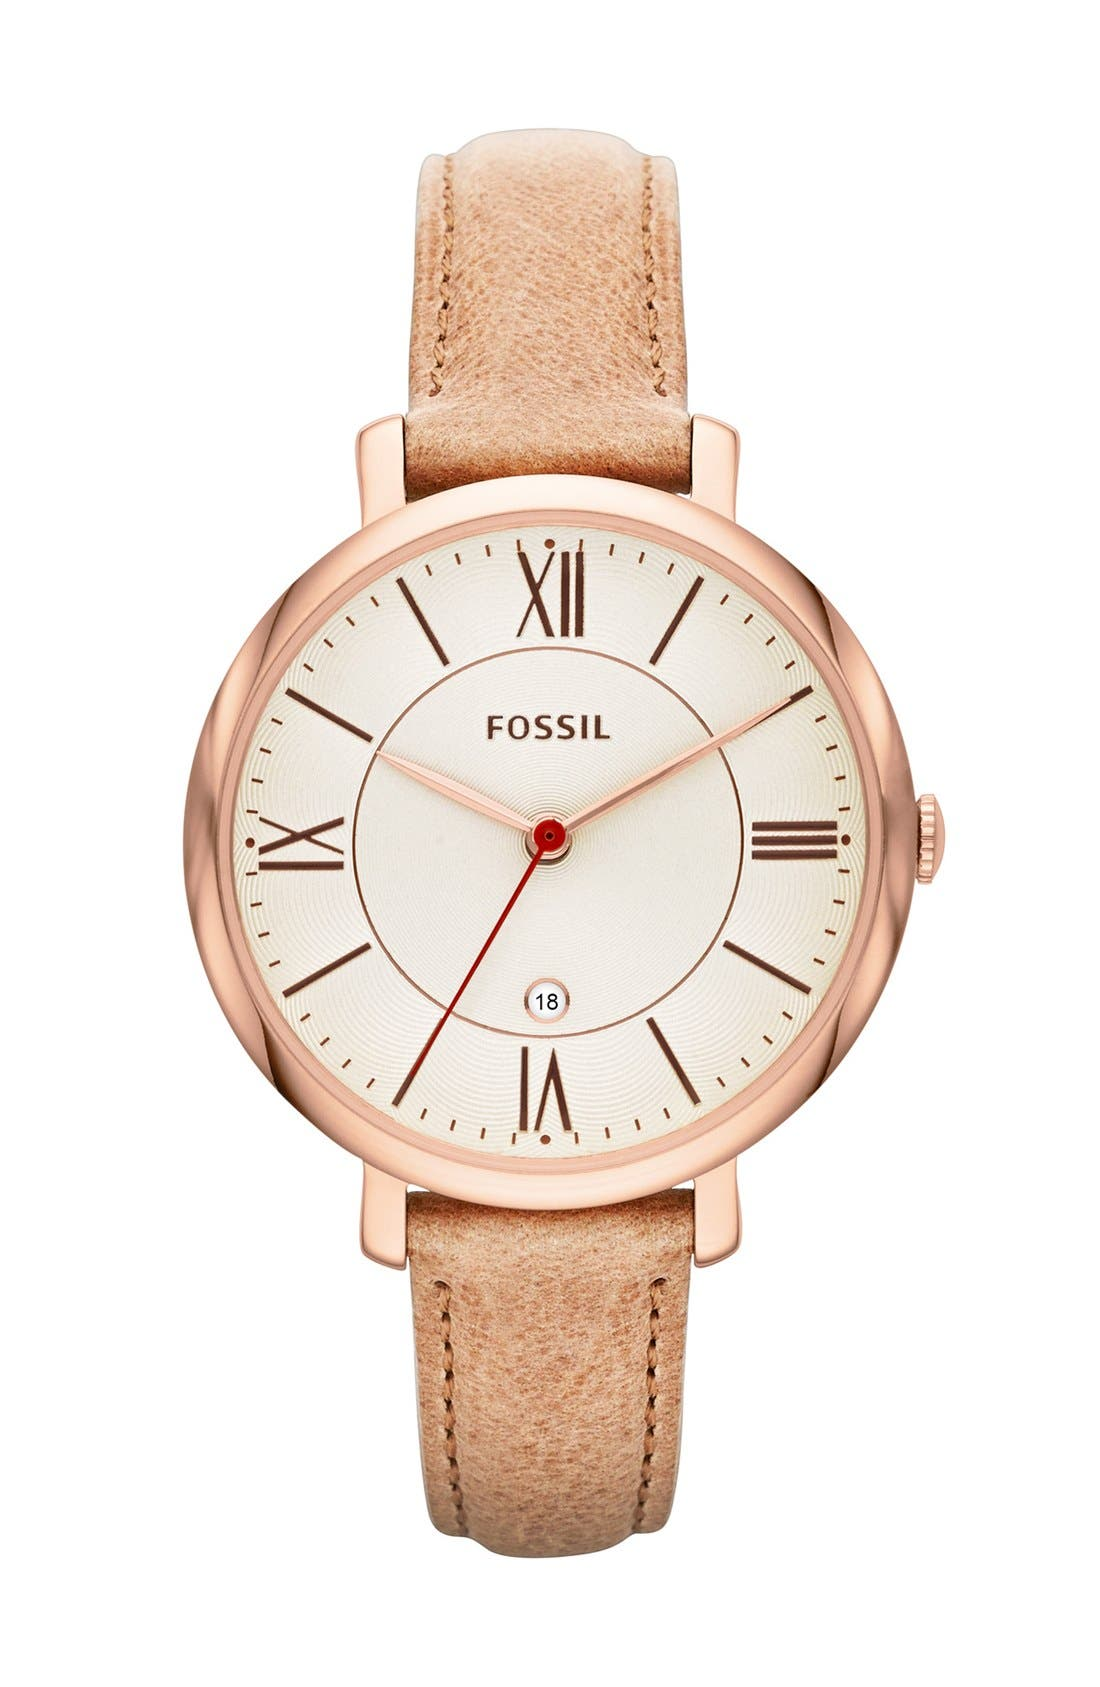 FOSSIL 'Jacqueline' Round Leather Strap Watch, 36mm, Main, color, SAND/ ROSE GOLD